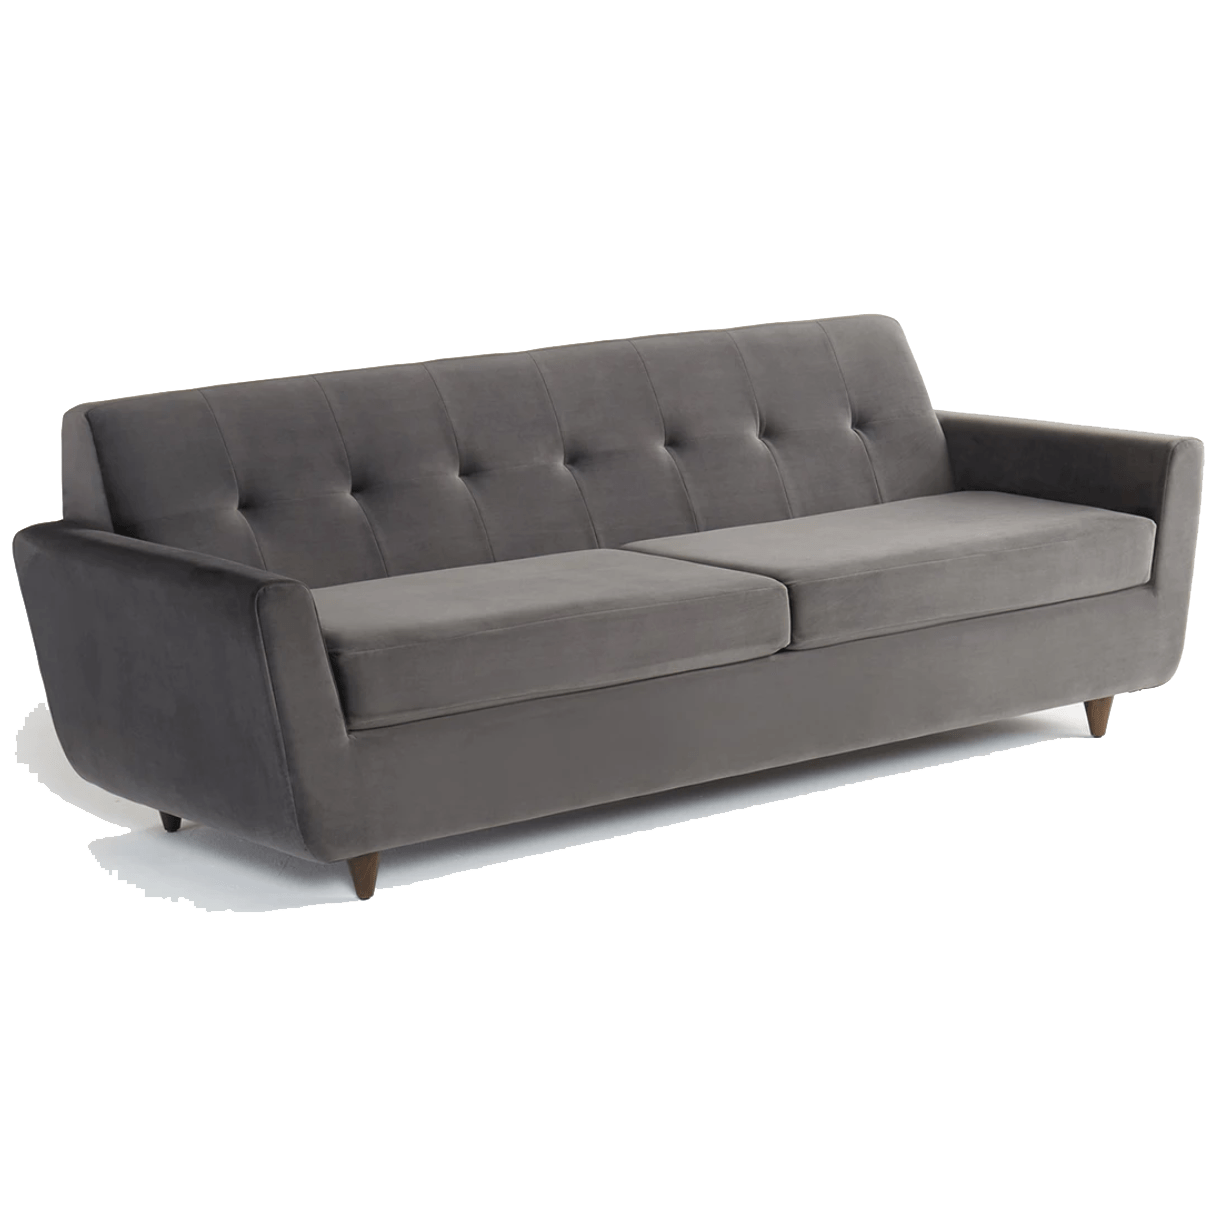 Made Sofa Reviews Hughes Sofa With Storage